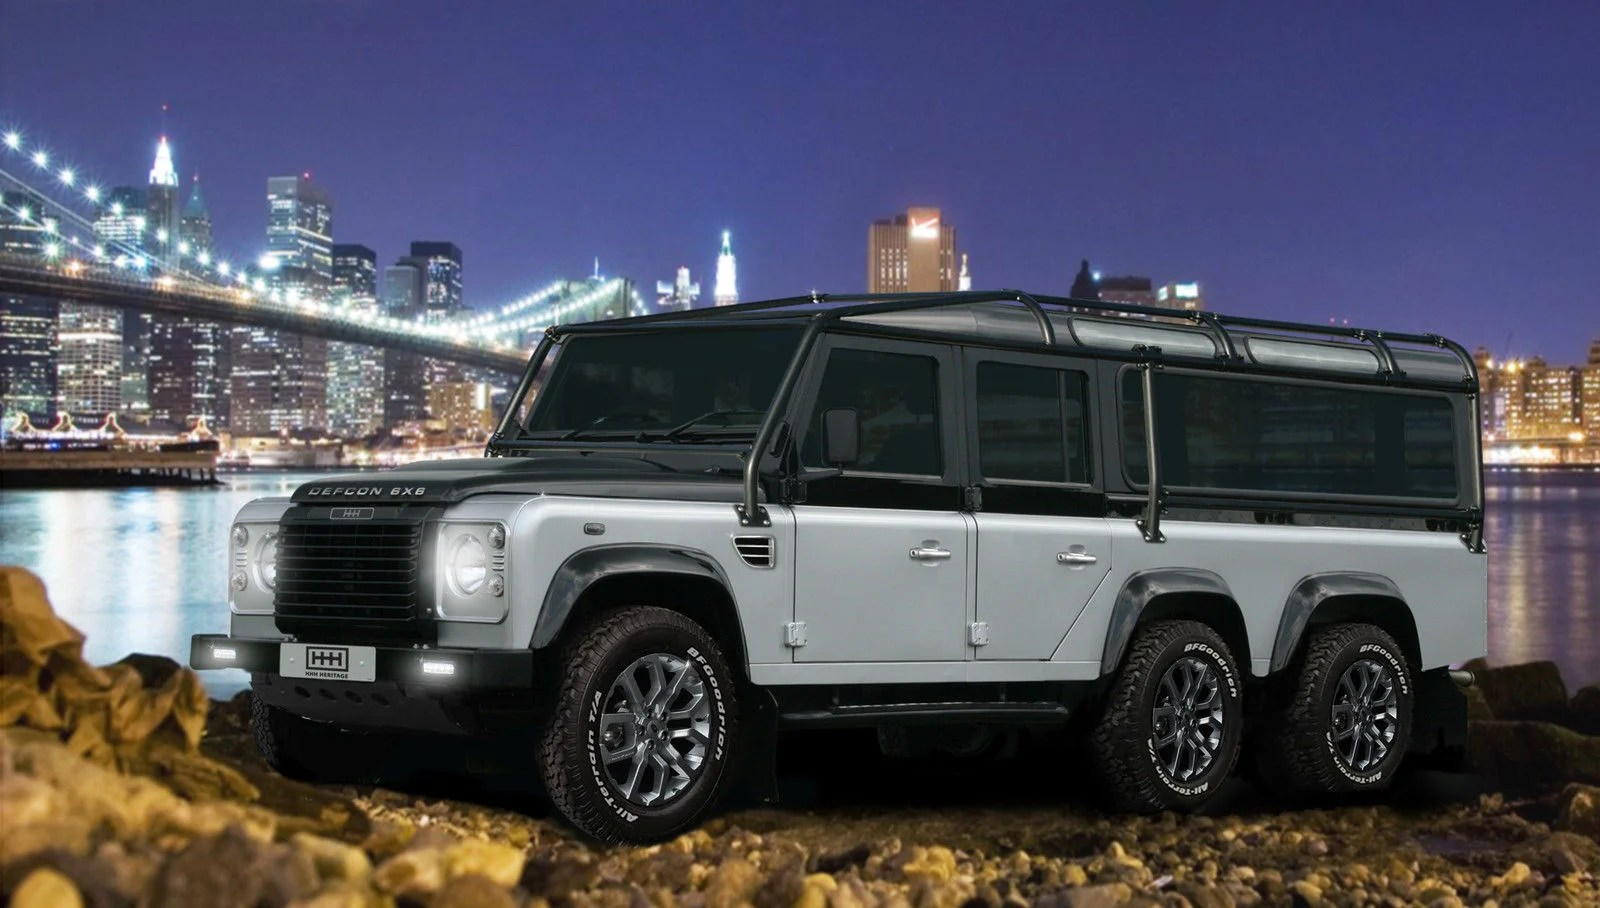 Got $585 000 This Land Rover Defcon 6X6 Defender is for